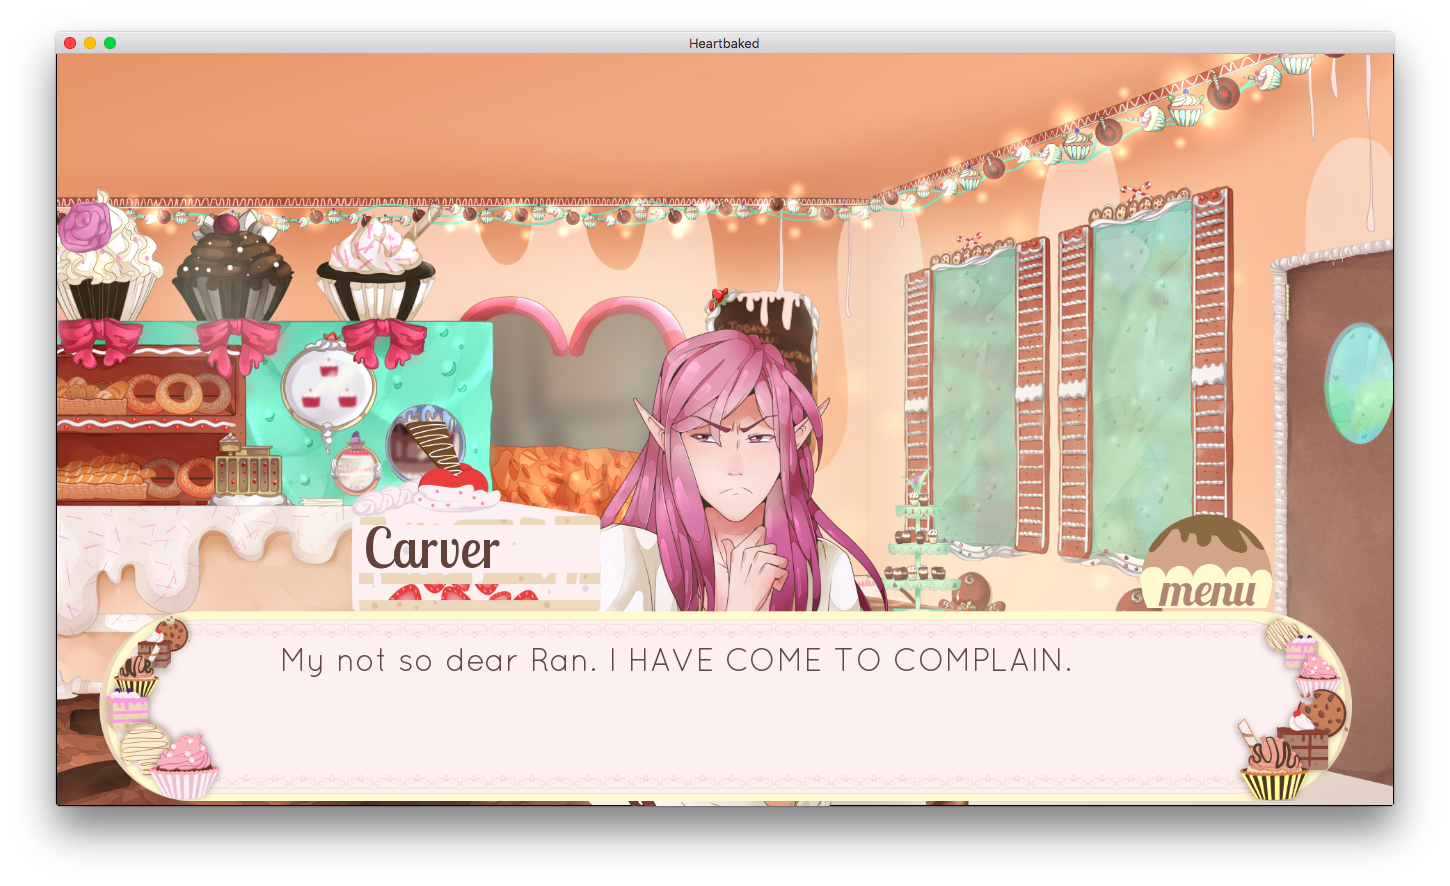 otometwist visual novel heartbaked nanoreno 2016